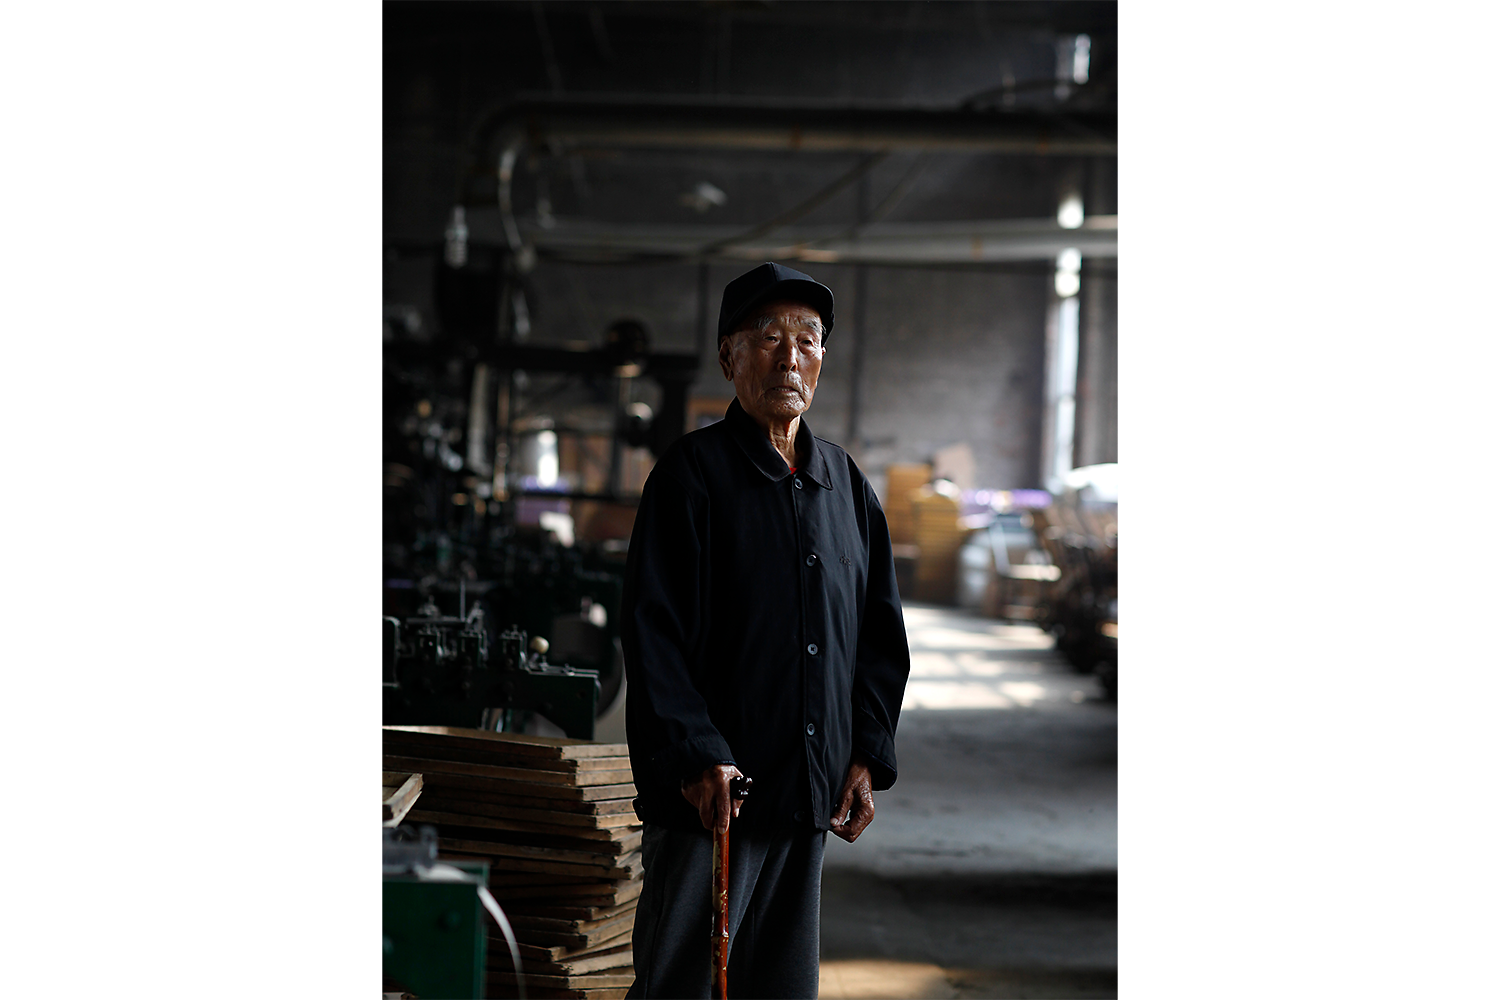 Liu Zhenpeng was among the first group of workers hired by the factory in 1967. He is now 97, and he worked at the factory for three decades.